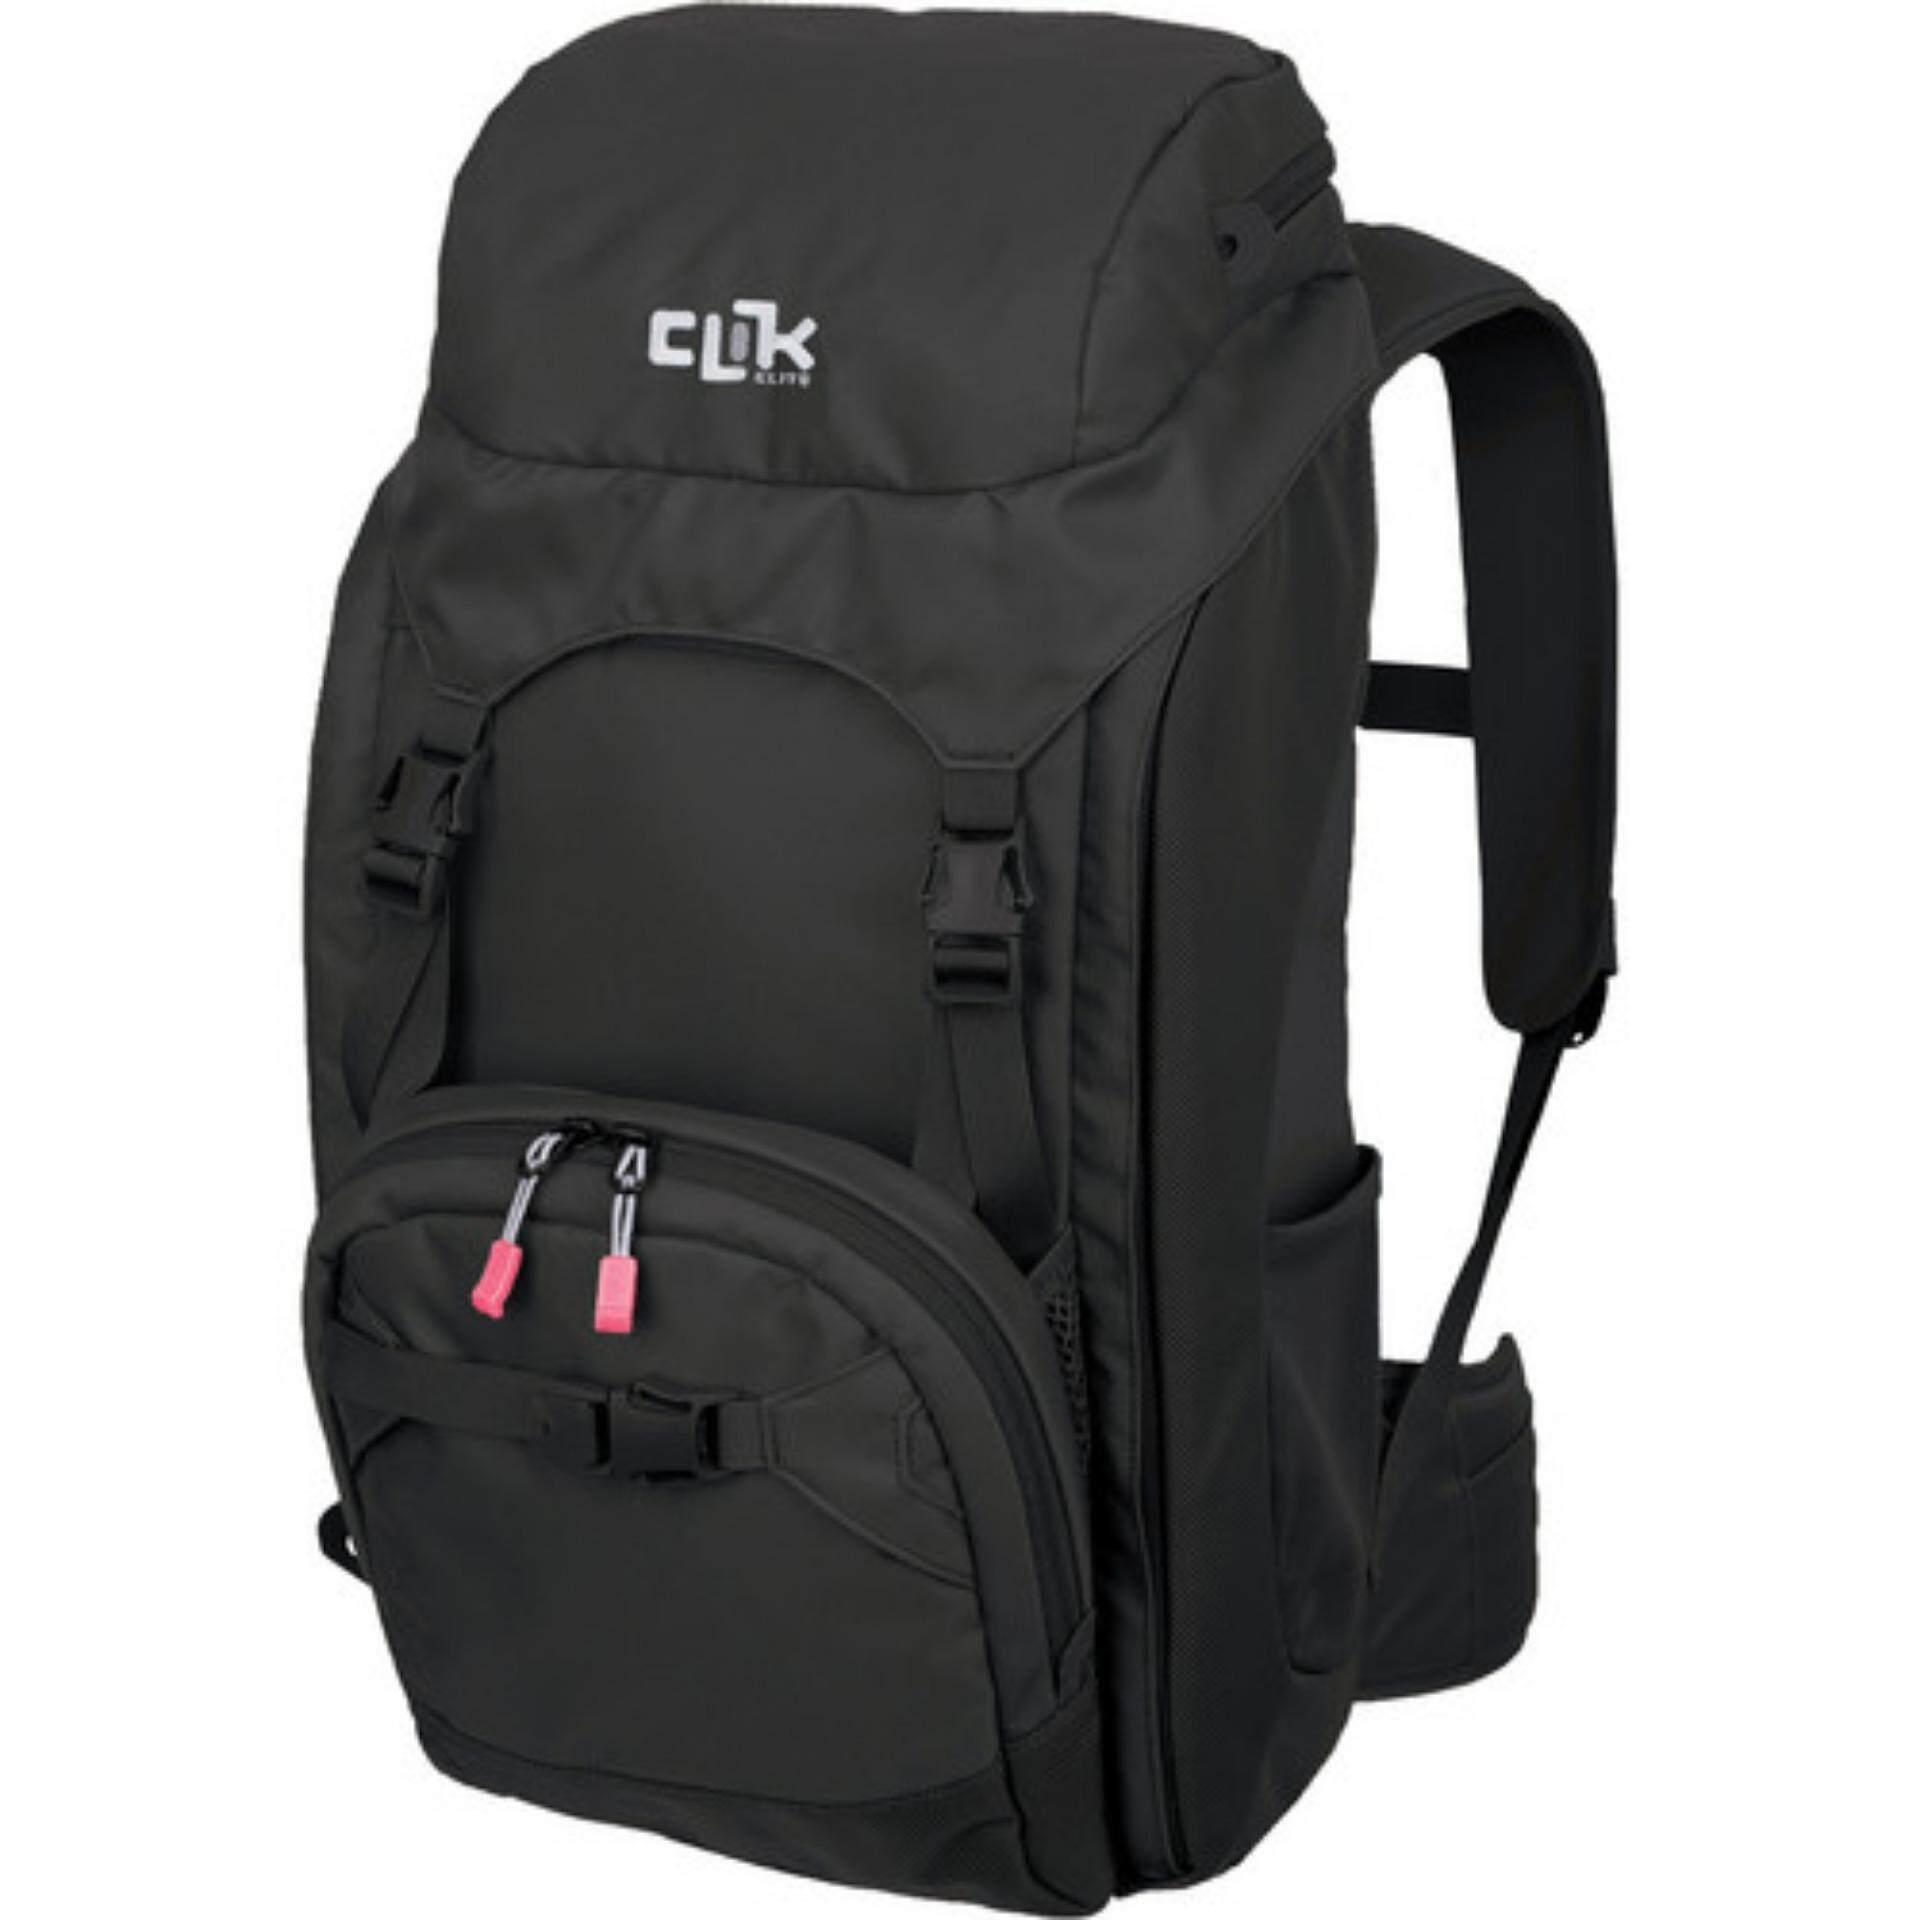 CLIK ELITE CE705 OUTDOOR CAMERA BACKPACK